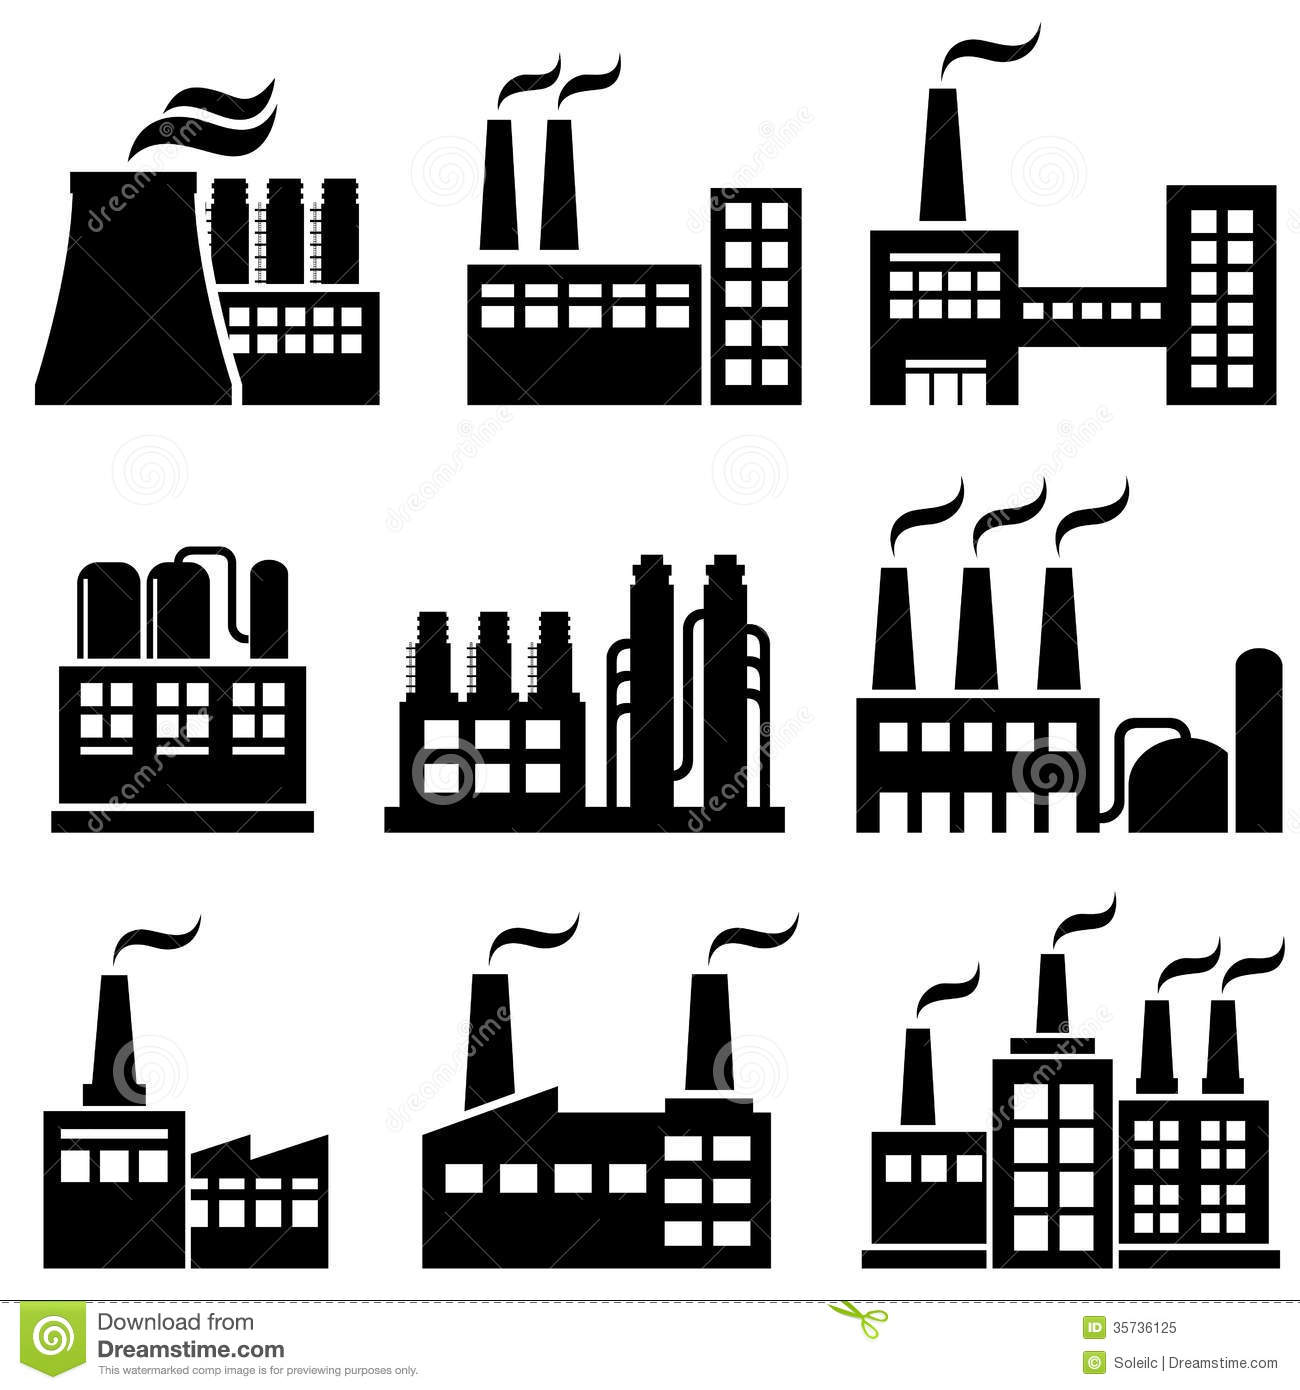 Industrial building clipart.